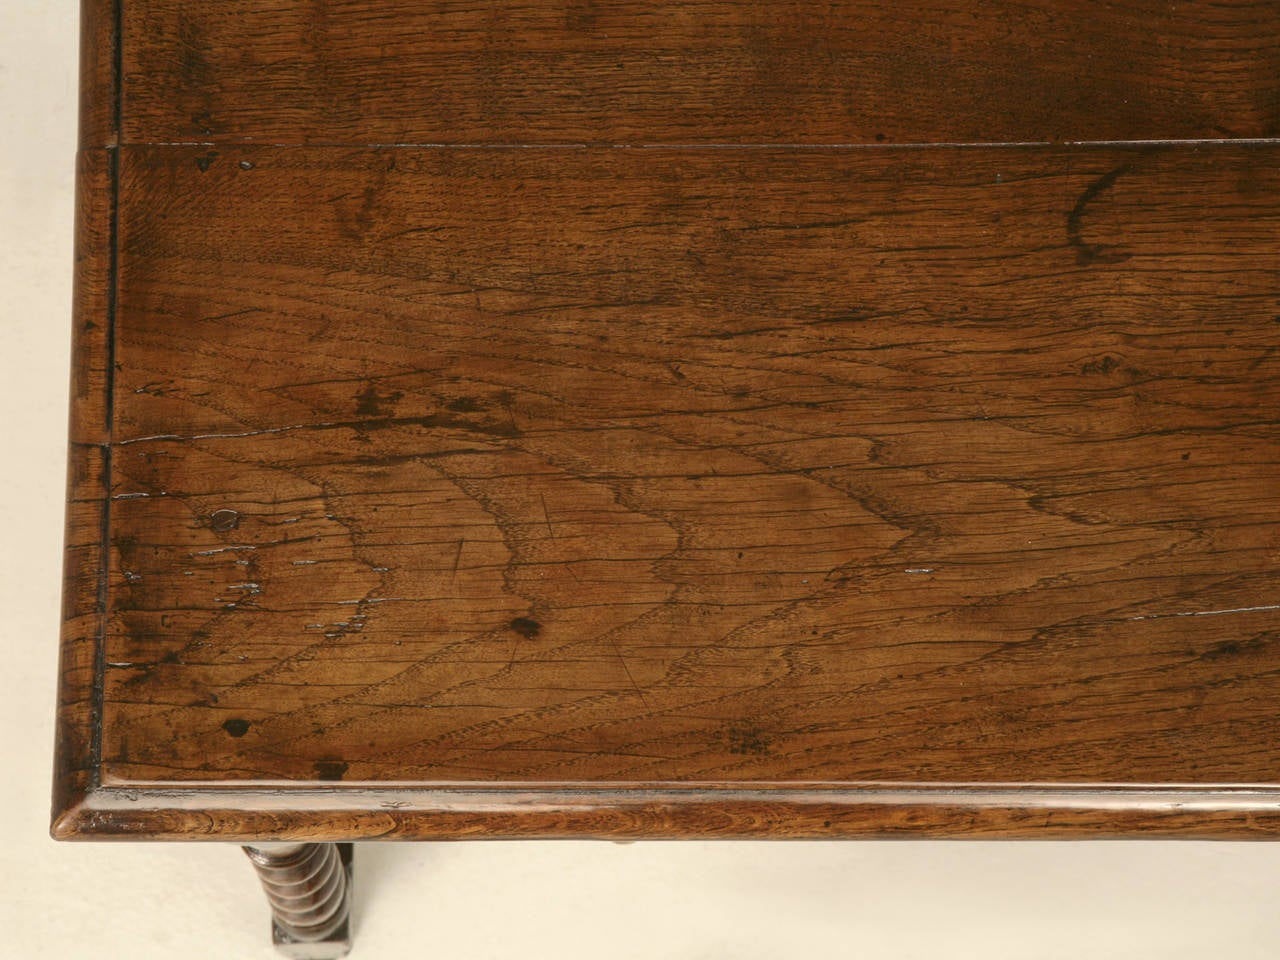 18th Century English Country Style Writing Desk or End Table, circa 1700s For Sale